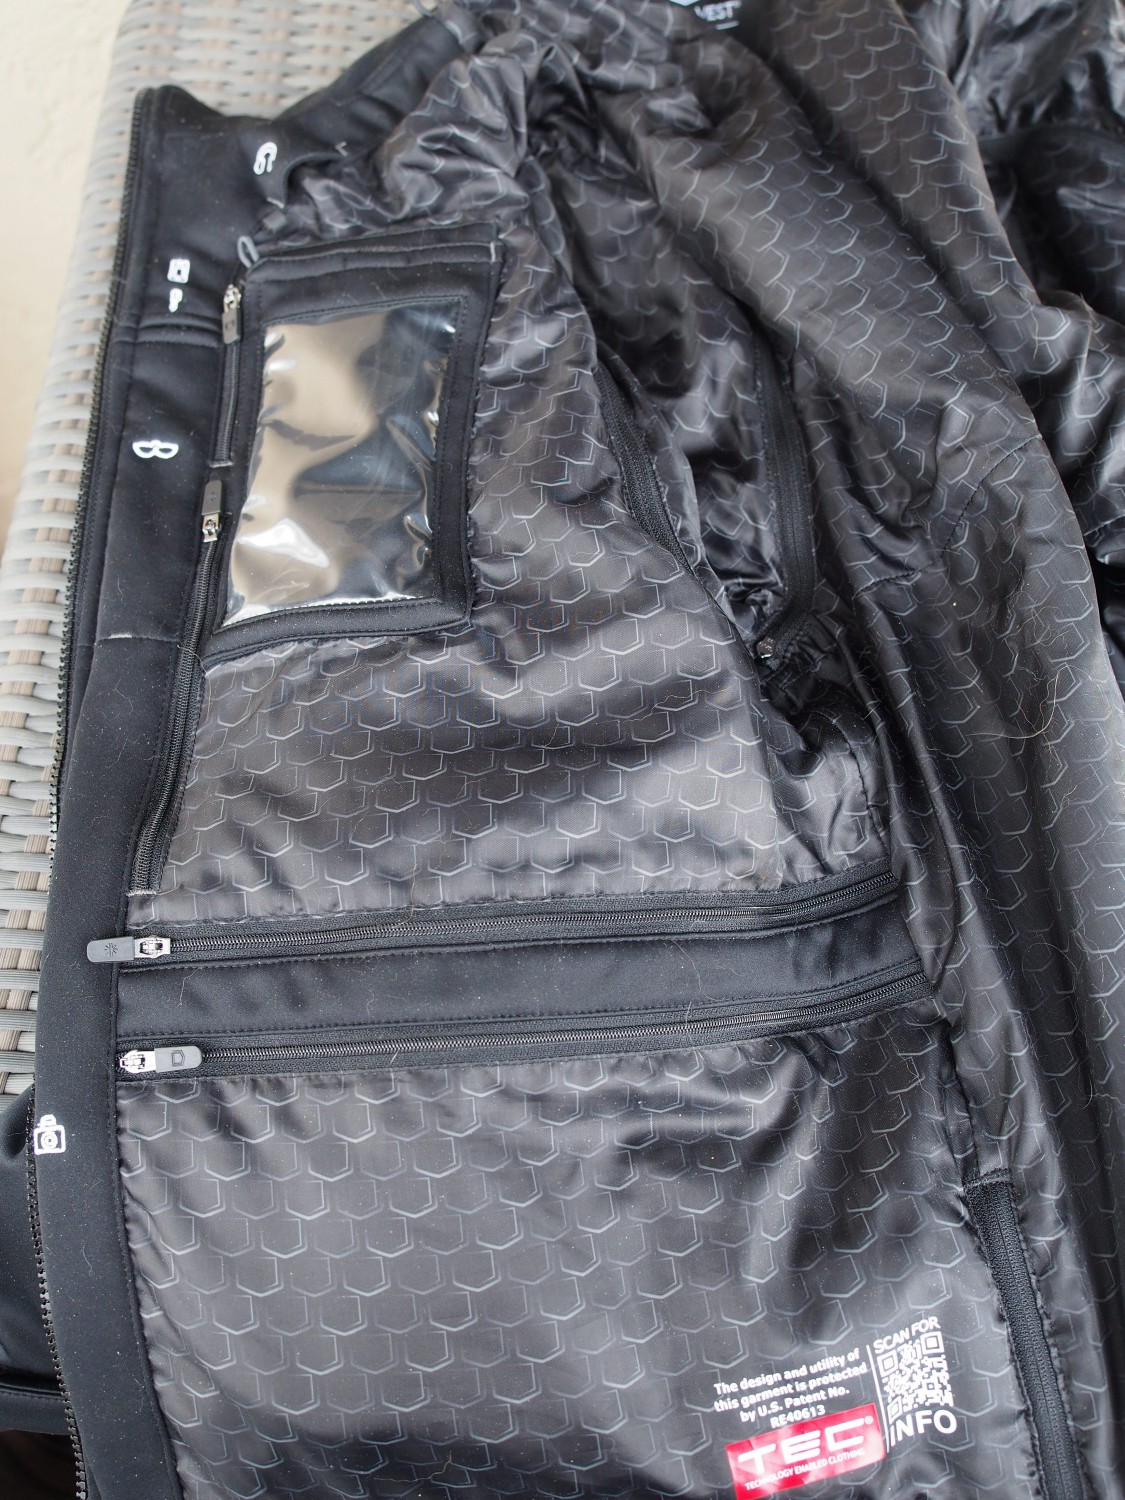 Right side camera pocket,cell phone pocket and other pockets.